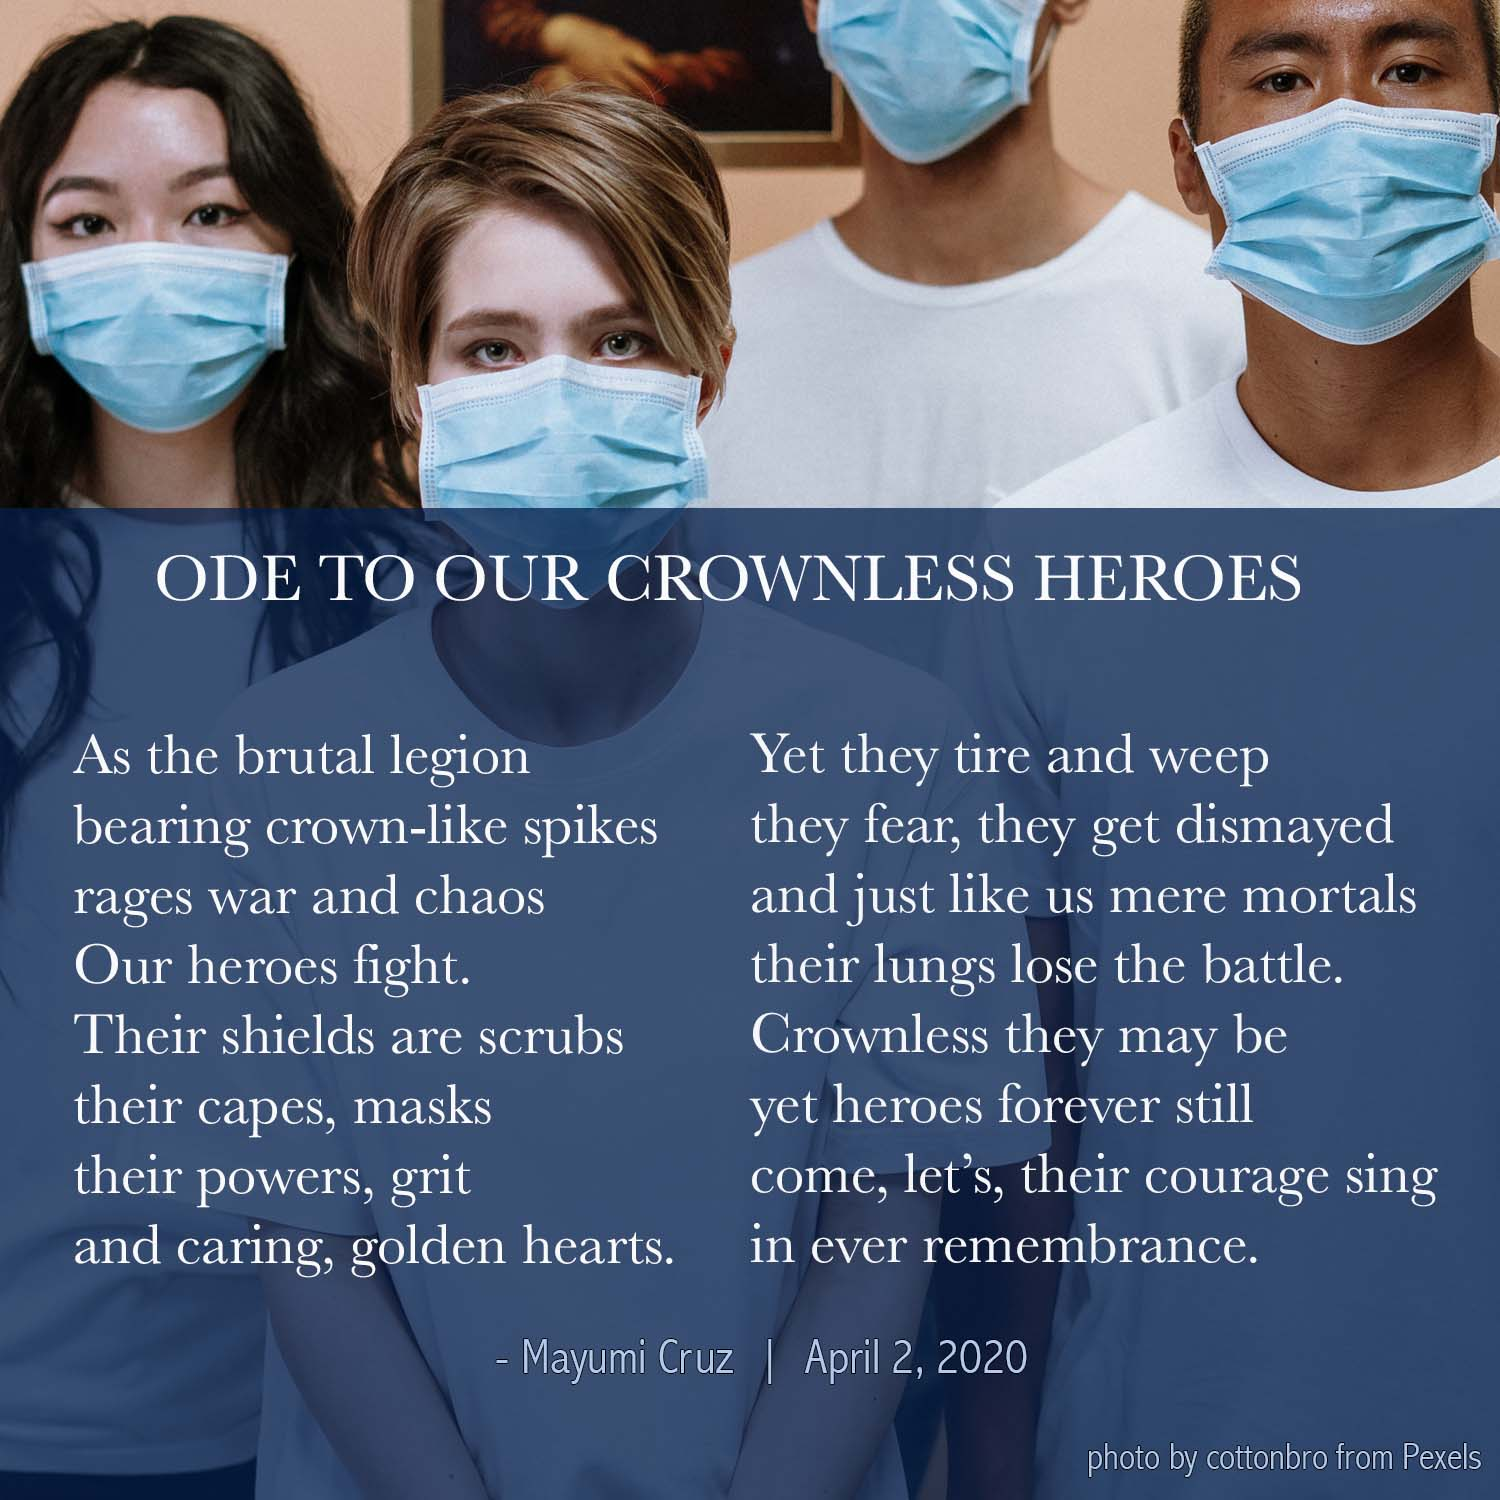 Ode to our crownless heroes